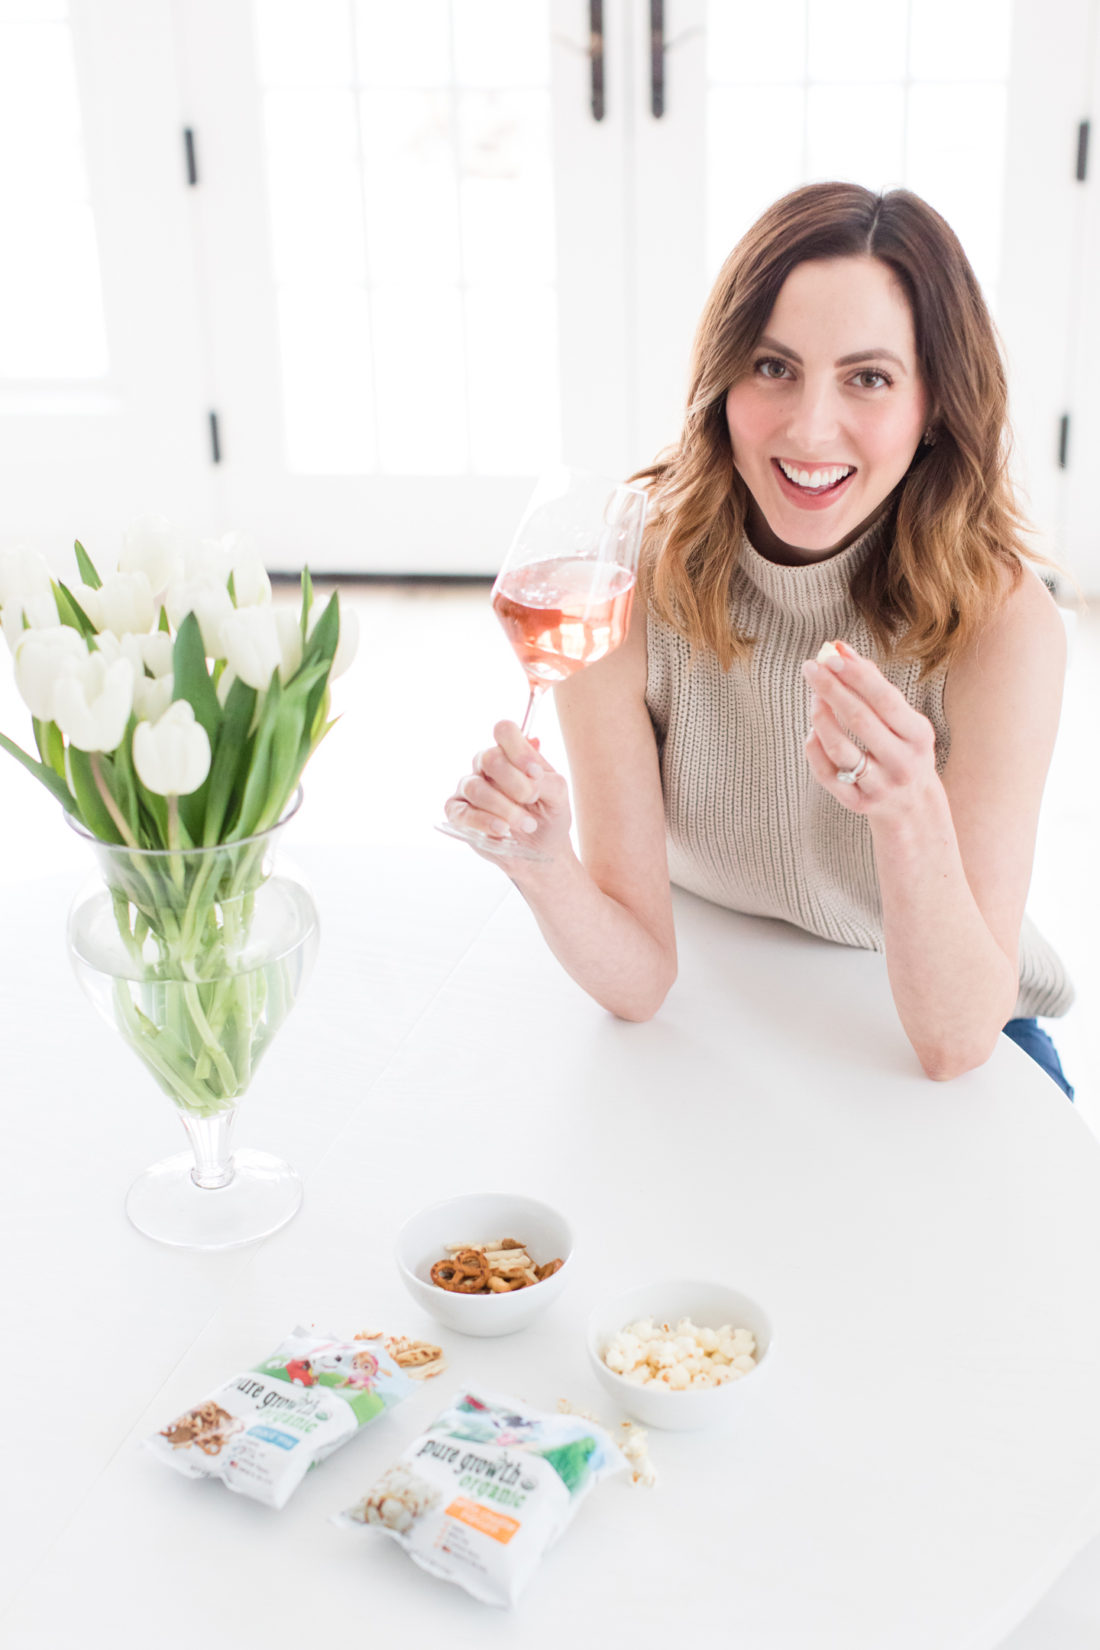 Eva Amurri Martino drinks Rosé and eats organic snacks at her kitchen table in Connecticut